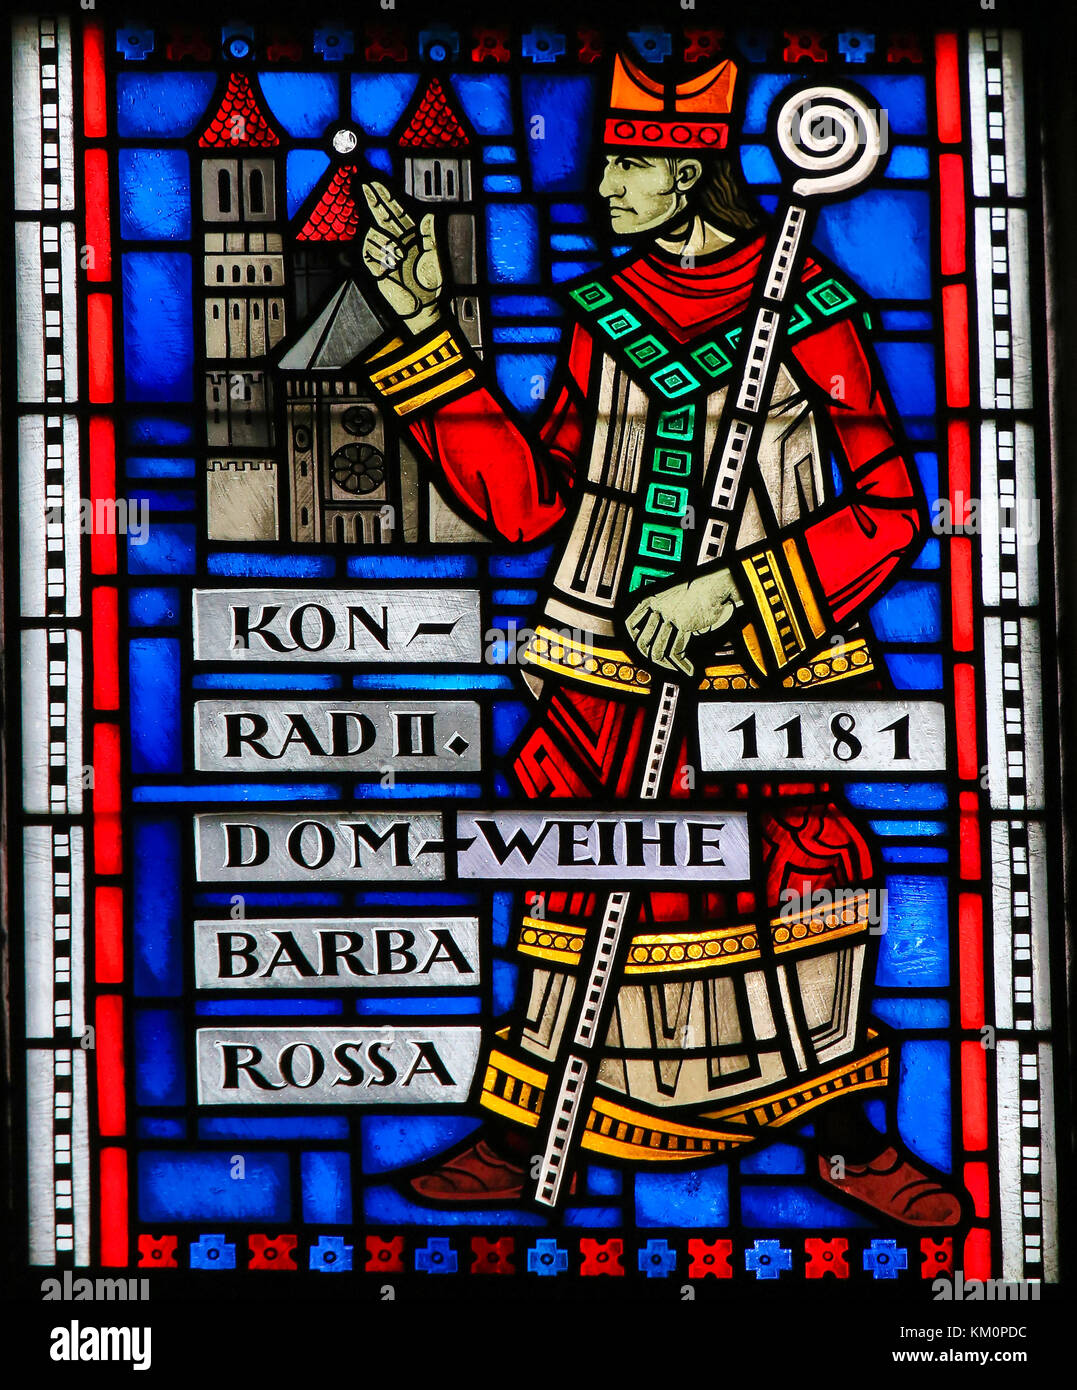 Stained Glass in Wormser Dom in Worms, Germany, depicting Konrad II von Sternberg, the Bishop who ordered the Construction - Stock Image